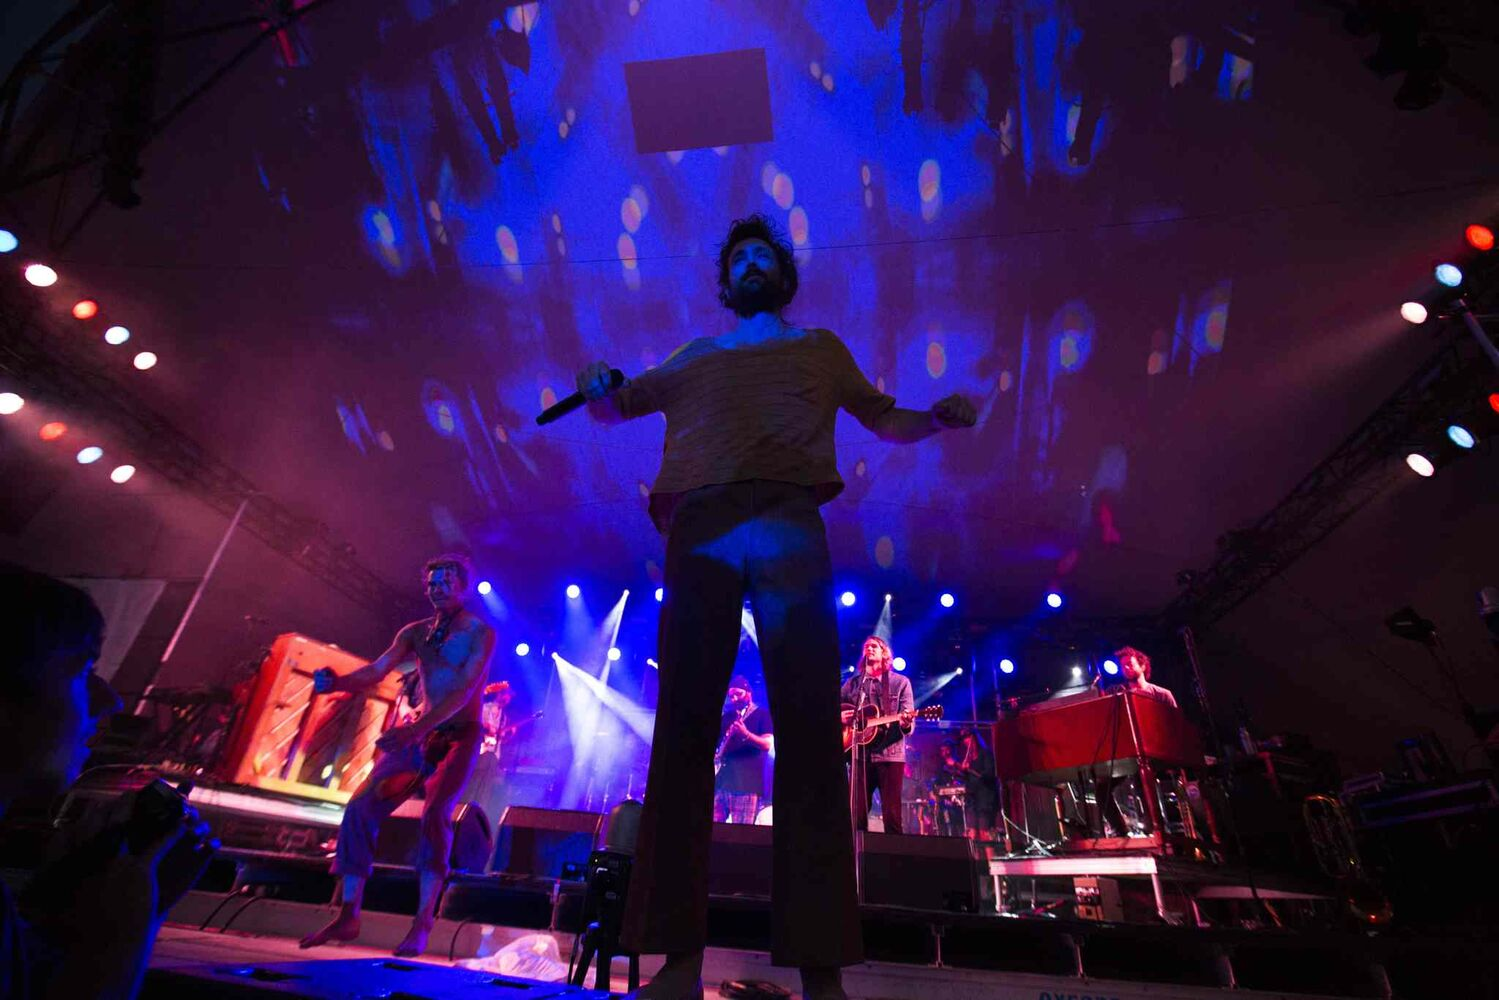 Edward Sharpe and the Magnetic Zeros play at the Winnipeg Folk Festival in Birds Hill Park on Thursday. (Mikaela MacKenzie / Winnipeg Free Press)